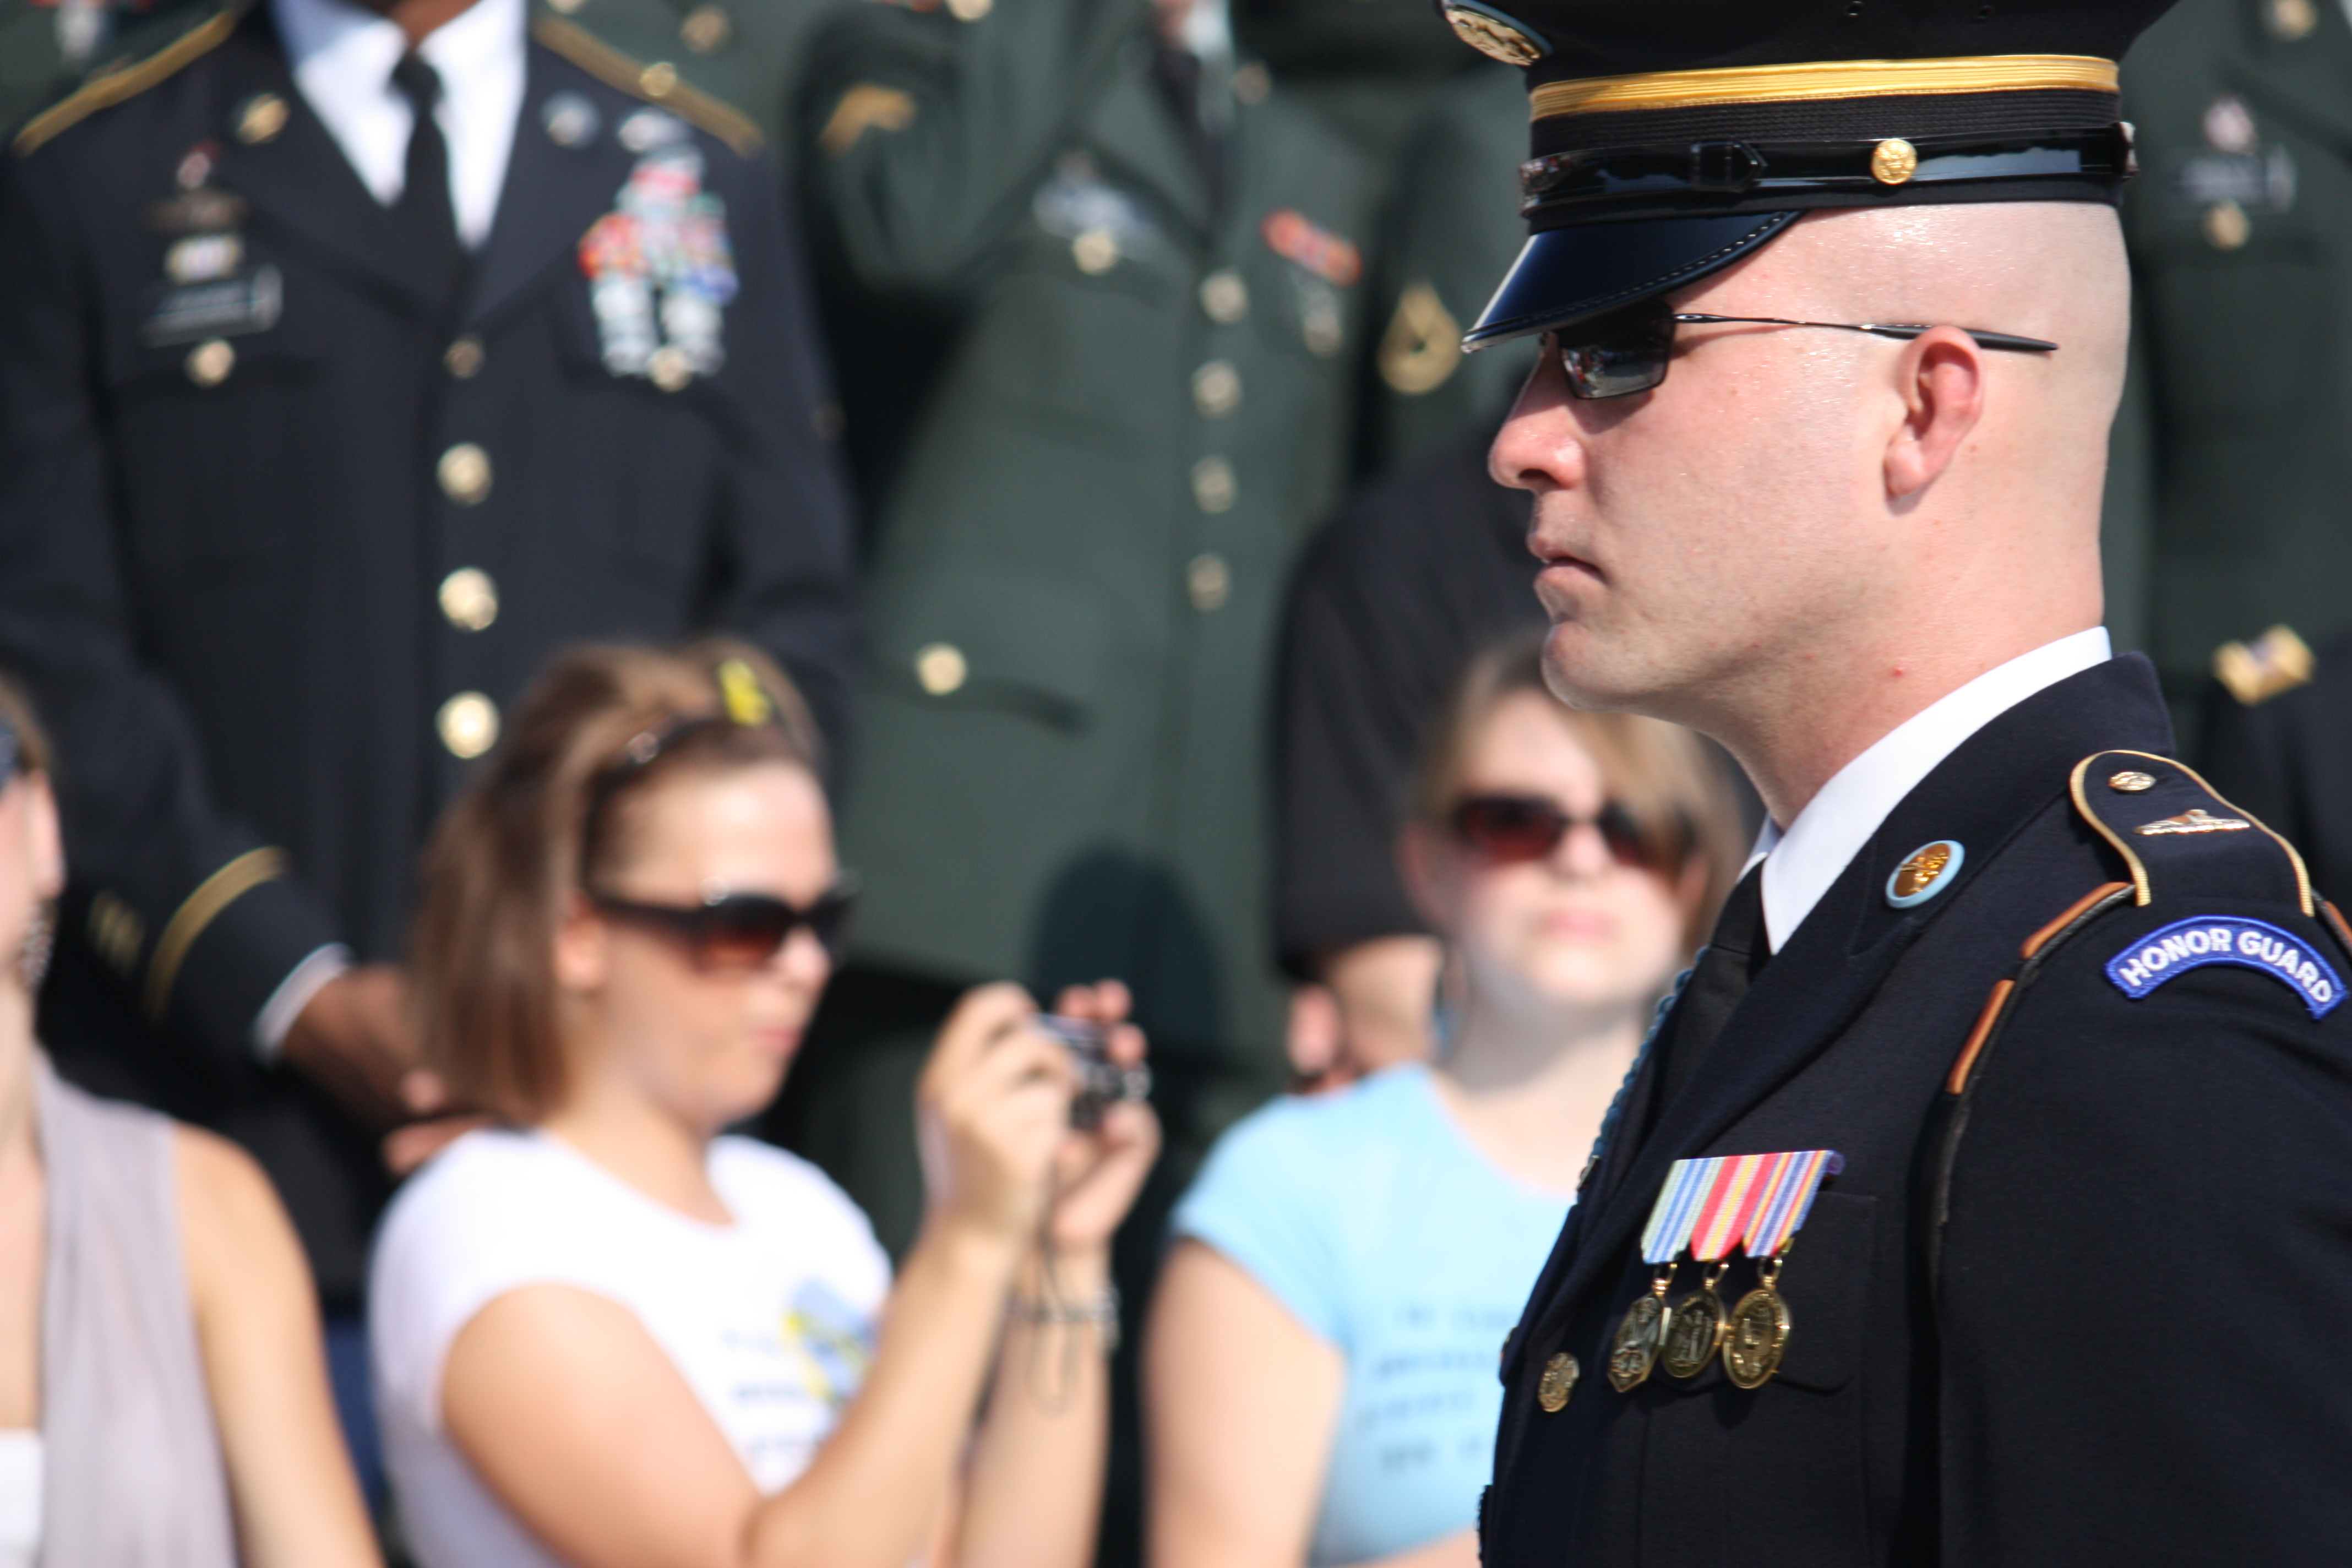 Oakley Det Cord >> File:Flickr - The U.S. Army - 3d Infantry conducts Changing of the Guard.jpg - Wikimedia Commons